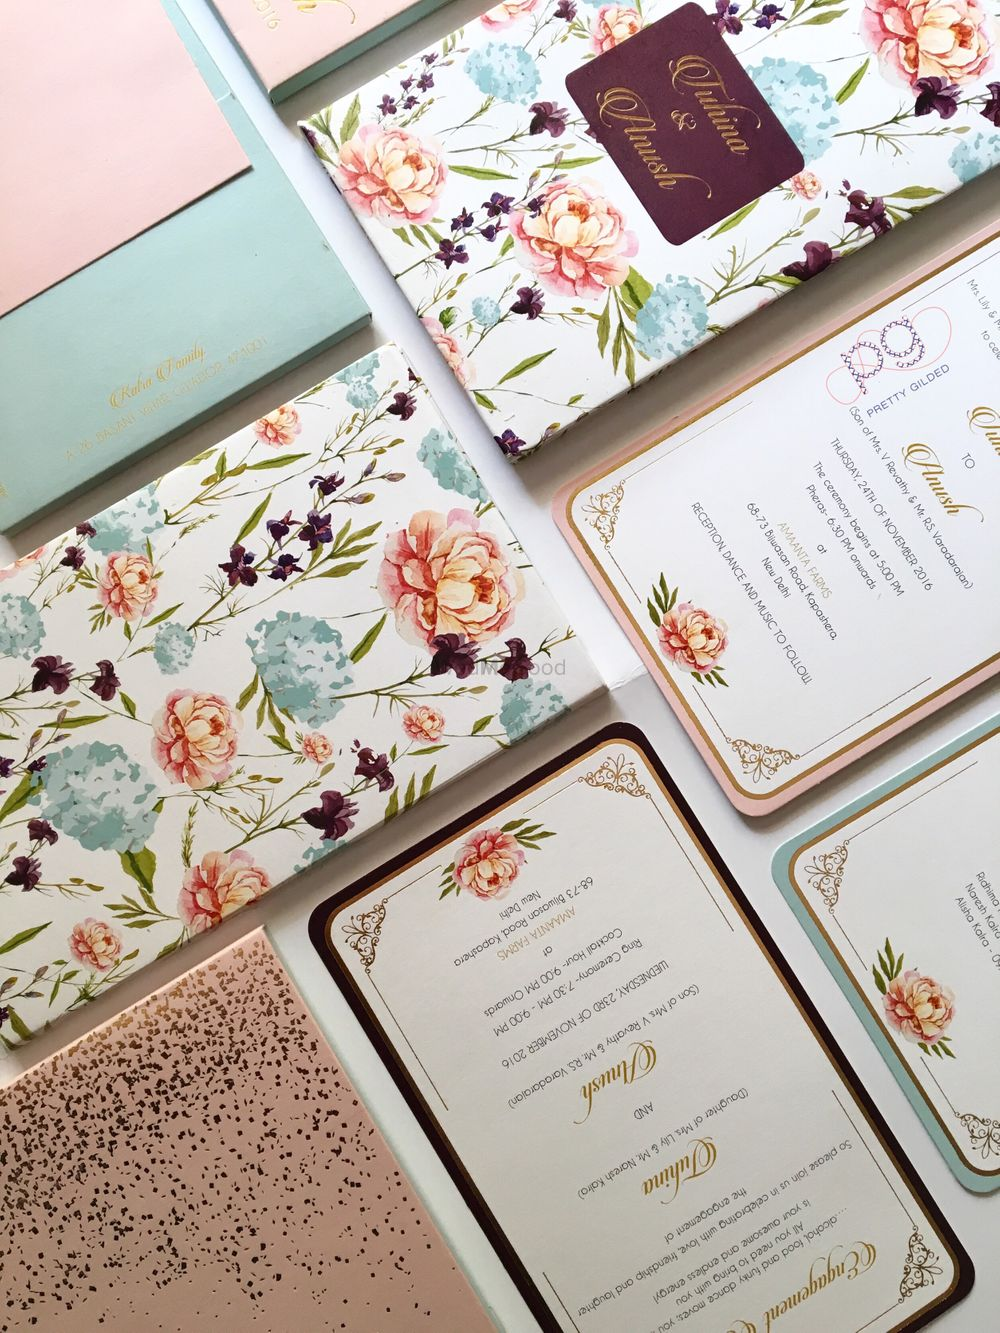 Photo From Floral Chic - By Pretty Gilded Designs